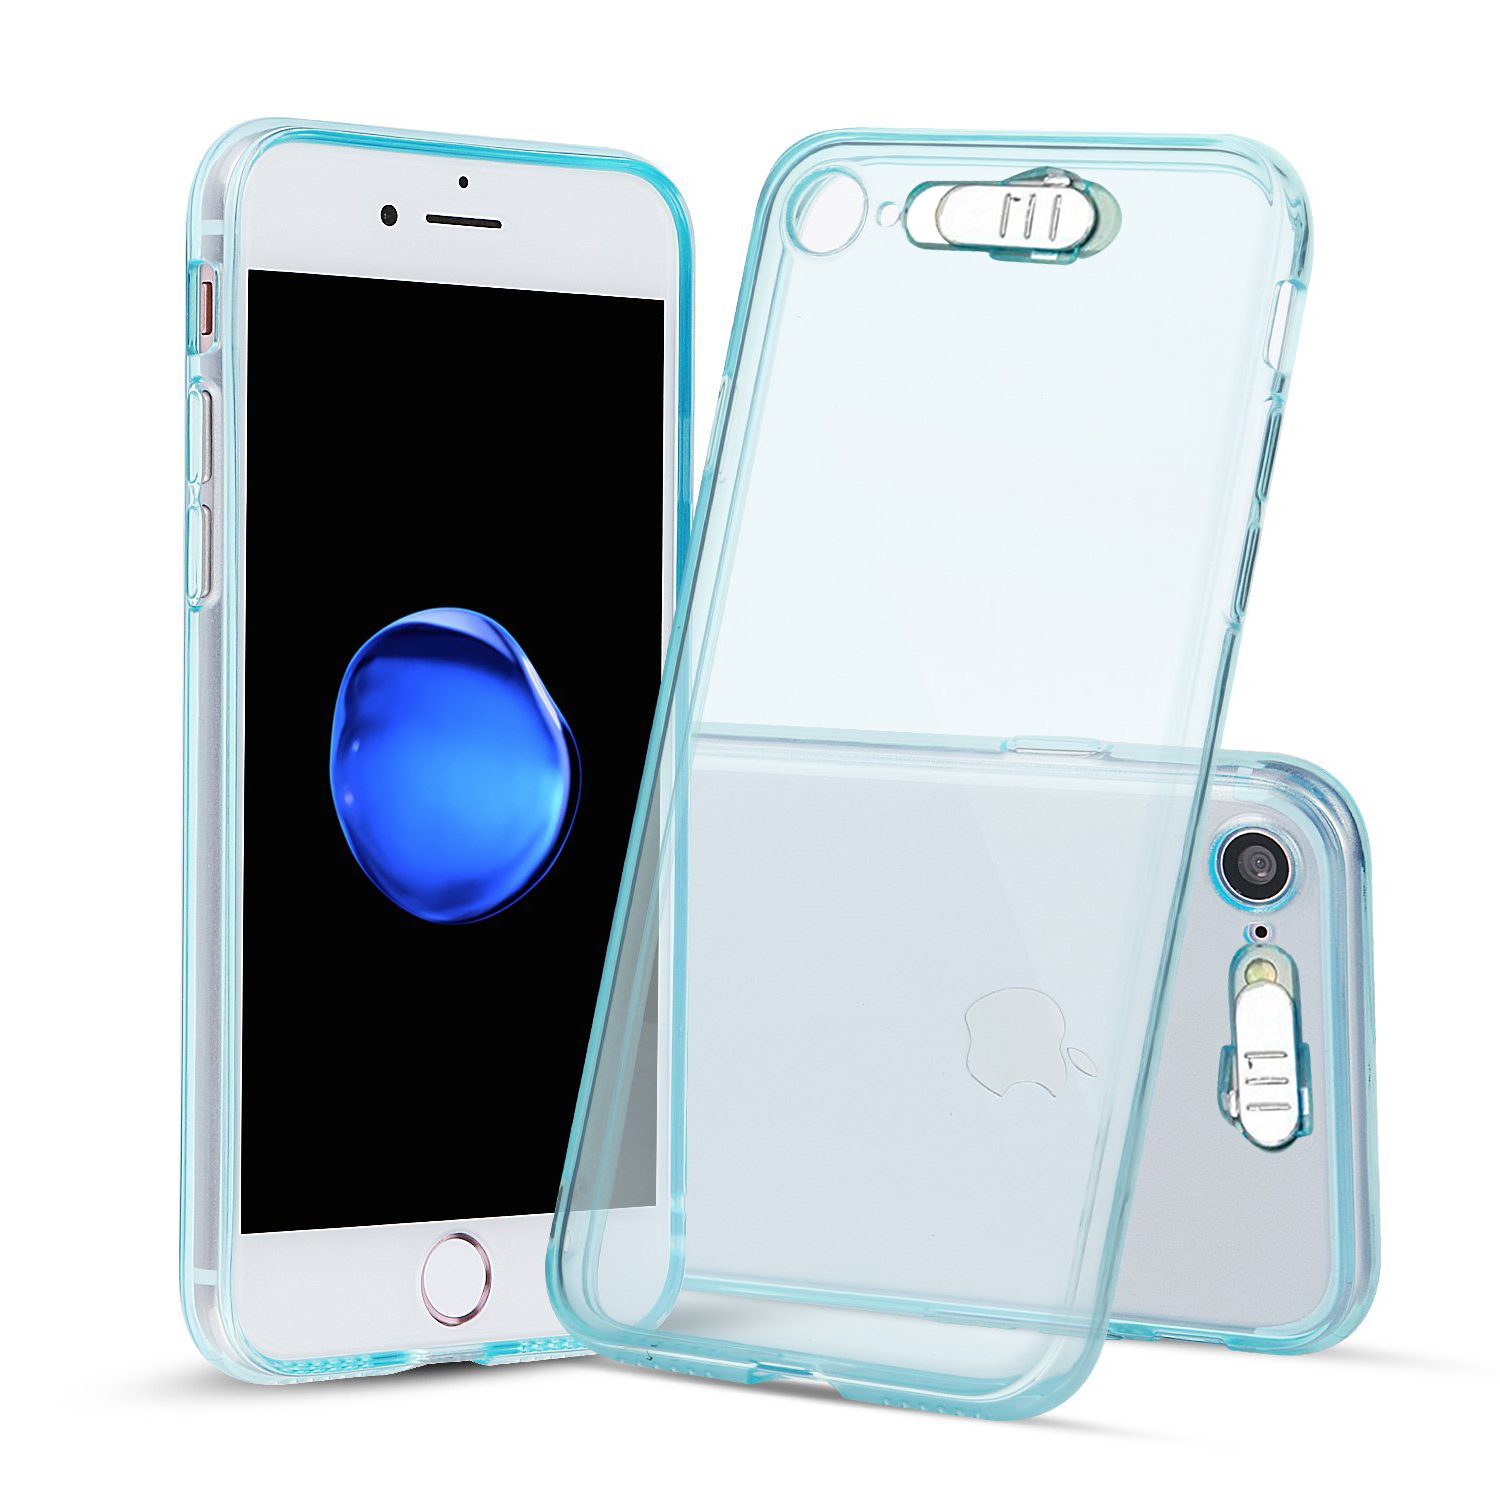 [REDshield] Apple iPhone 8 / 7 / 6S / 6 LED TPU Case, [Blue] Slim & Flexible Anti-shock [LED Light-Up Flashing] Crystal Silicone Protective TPU Gel Skin Case Cover